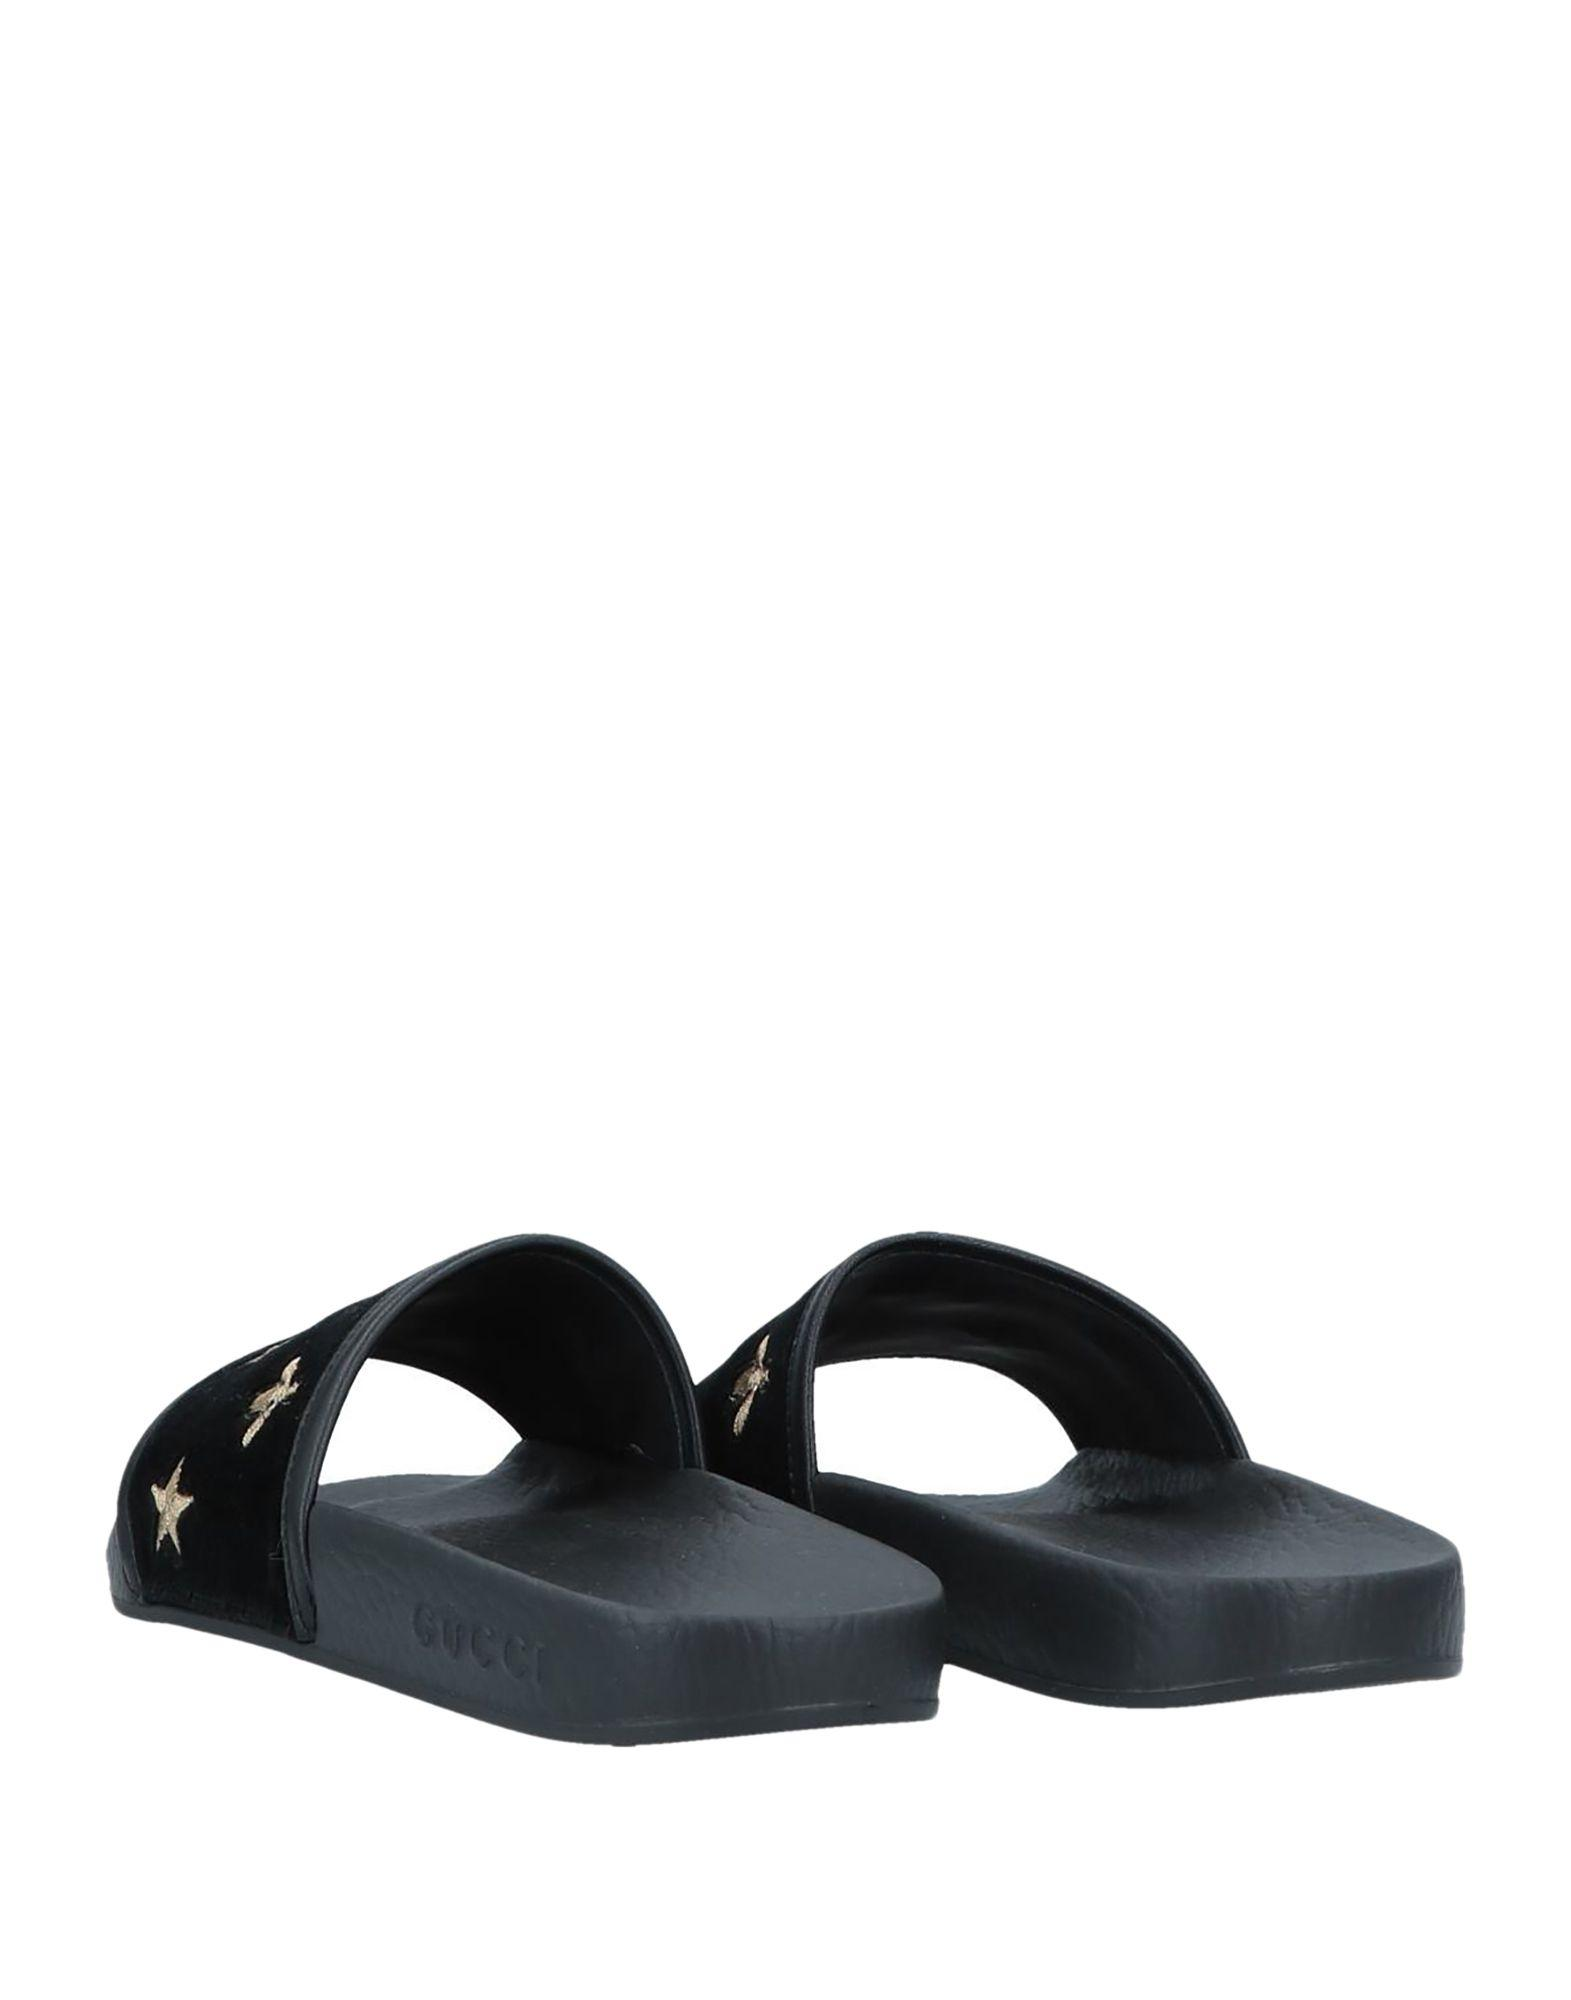 898a451910873e Lyst - Gucci Sandals in Black - Save 34%